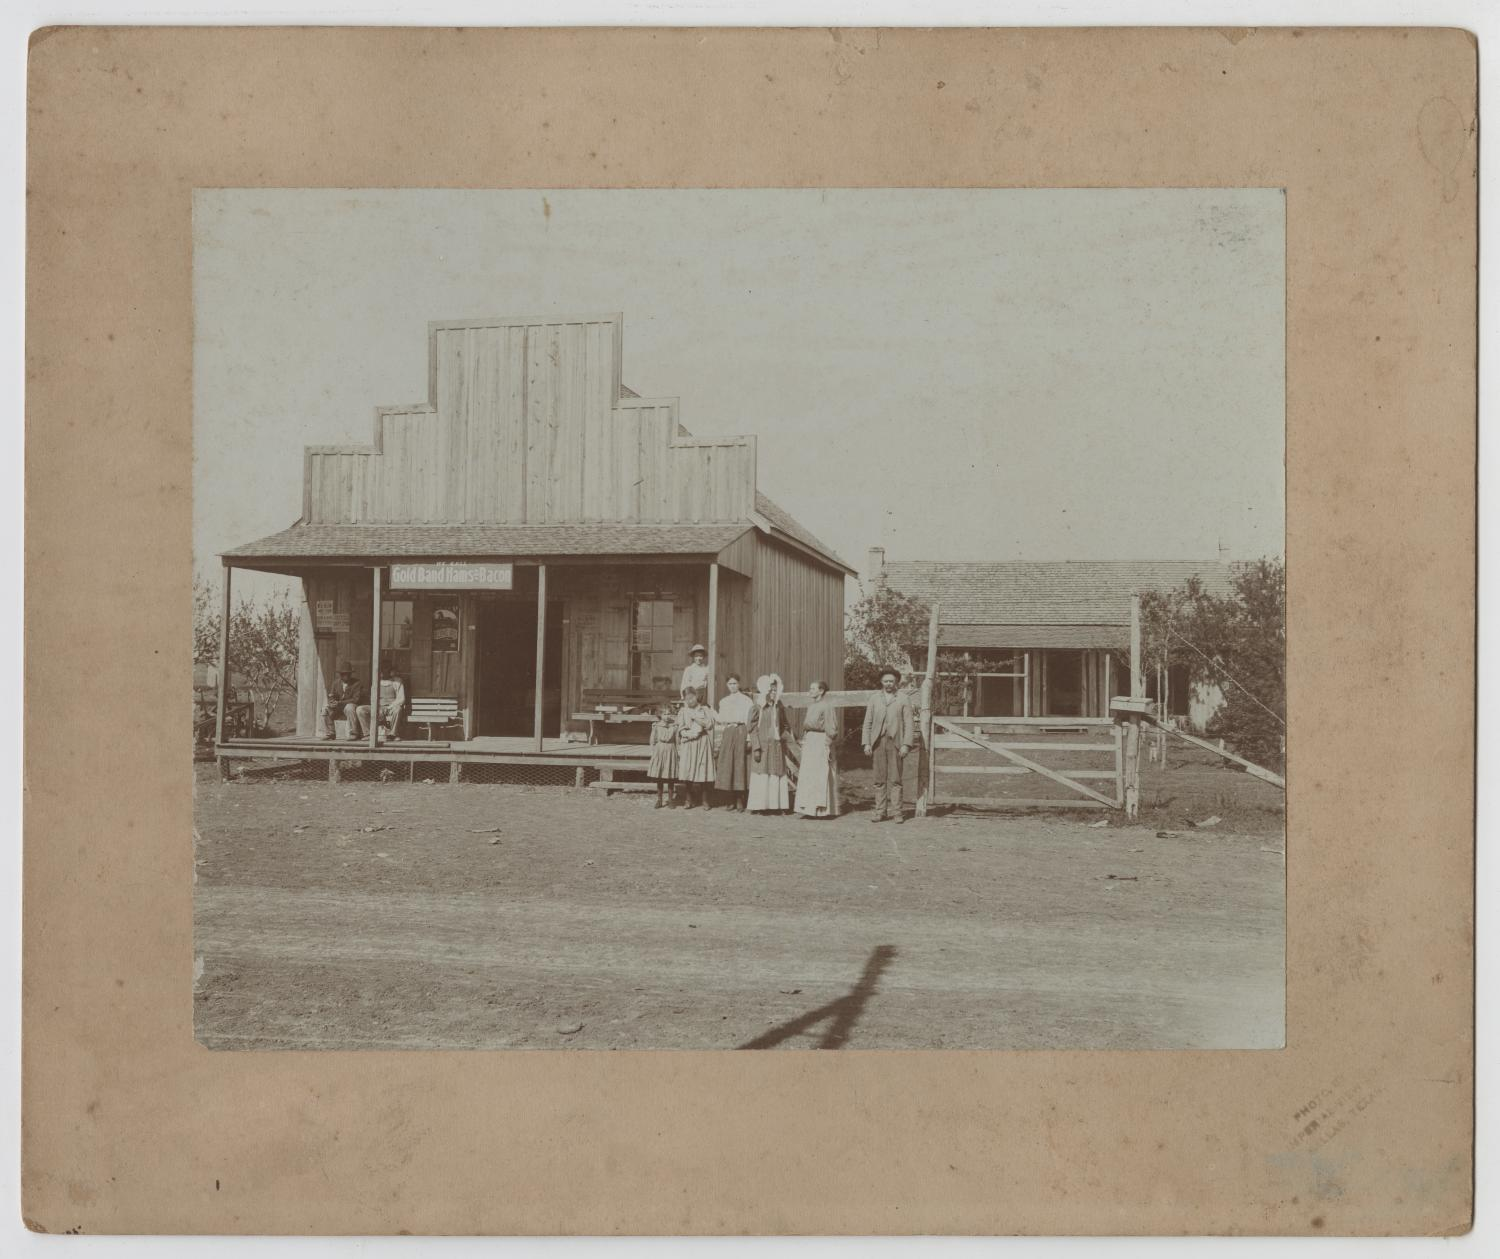 [Photograph of Country Store]                                                                                                      [Sequence #]: 1 of 2